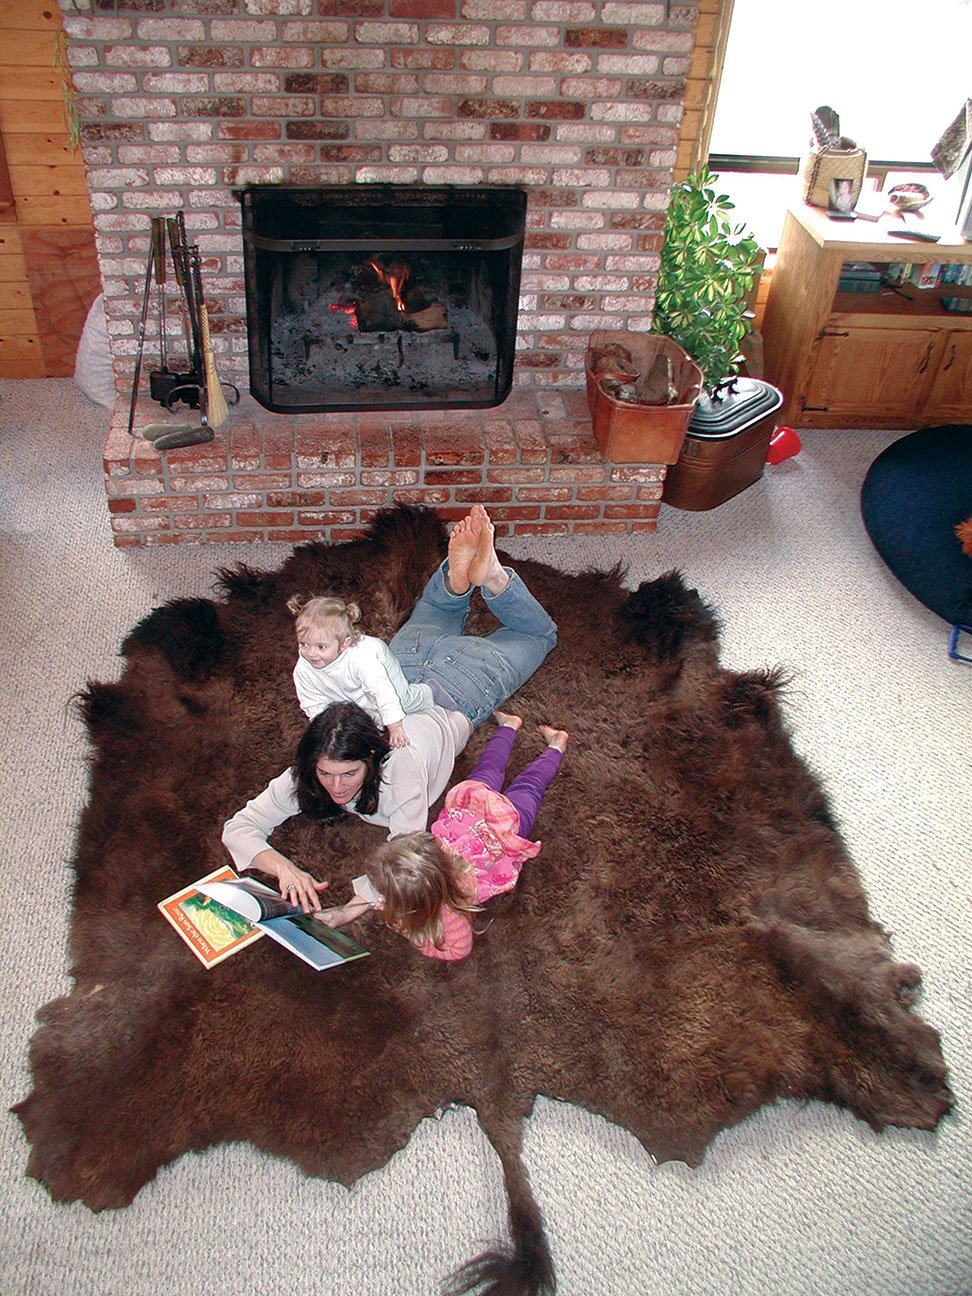 Buffalo Robes, Hides & Rugs: naturally tanned, highest quality. by Traditional Tanners